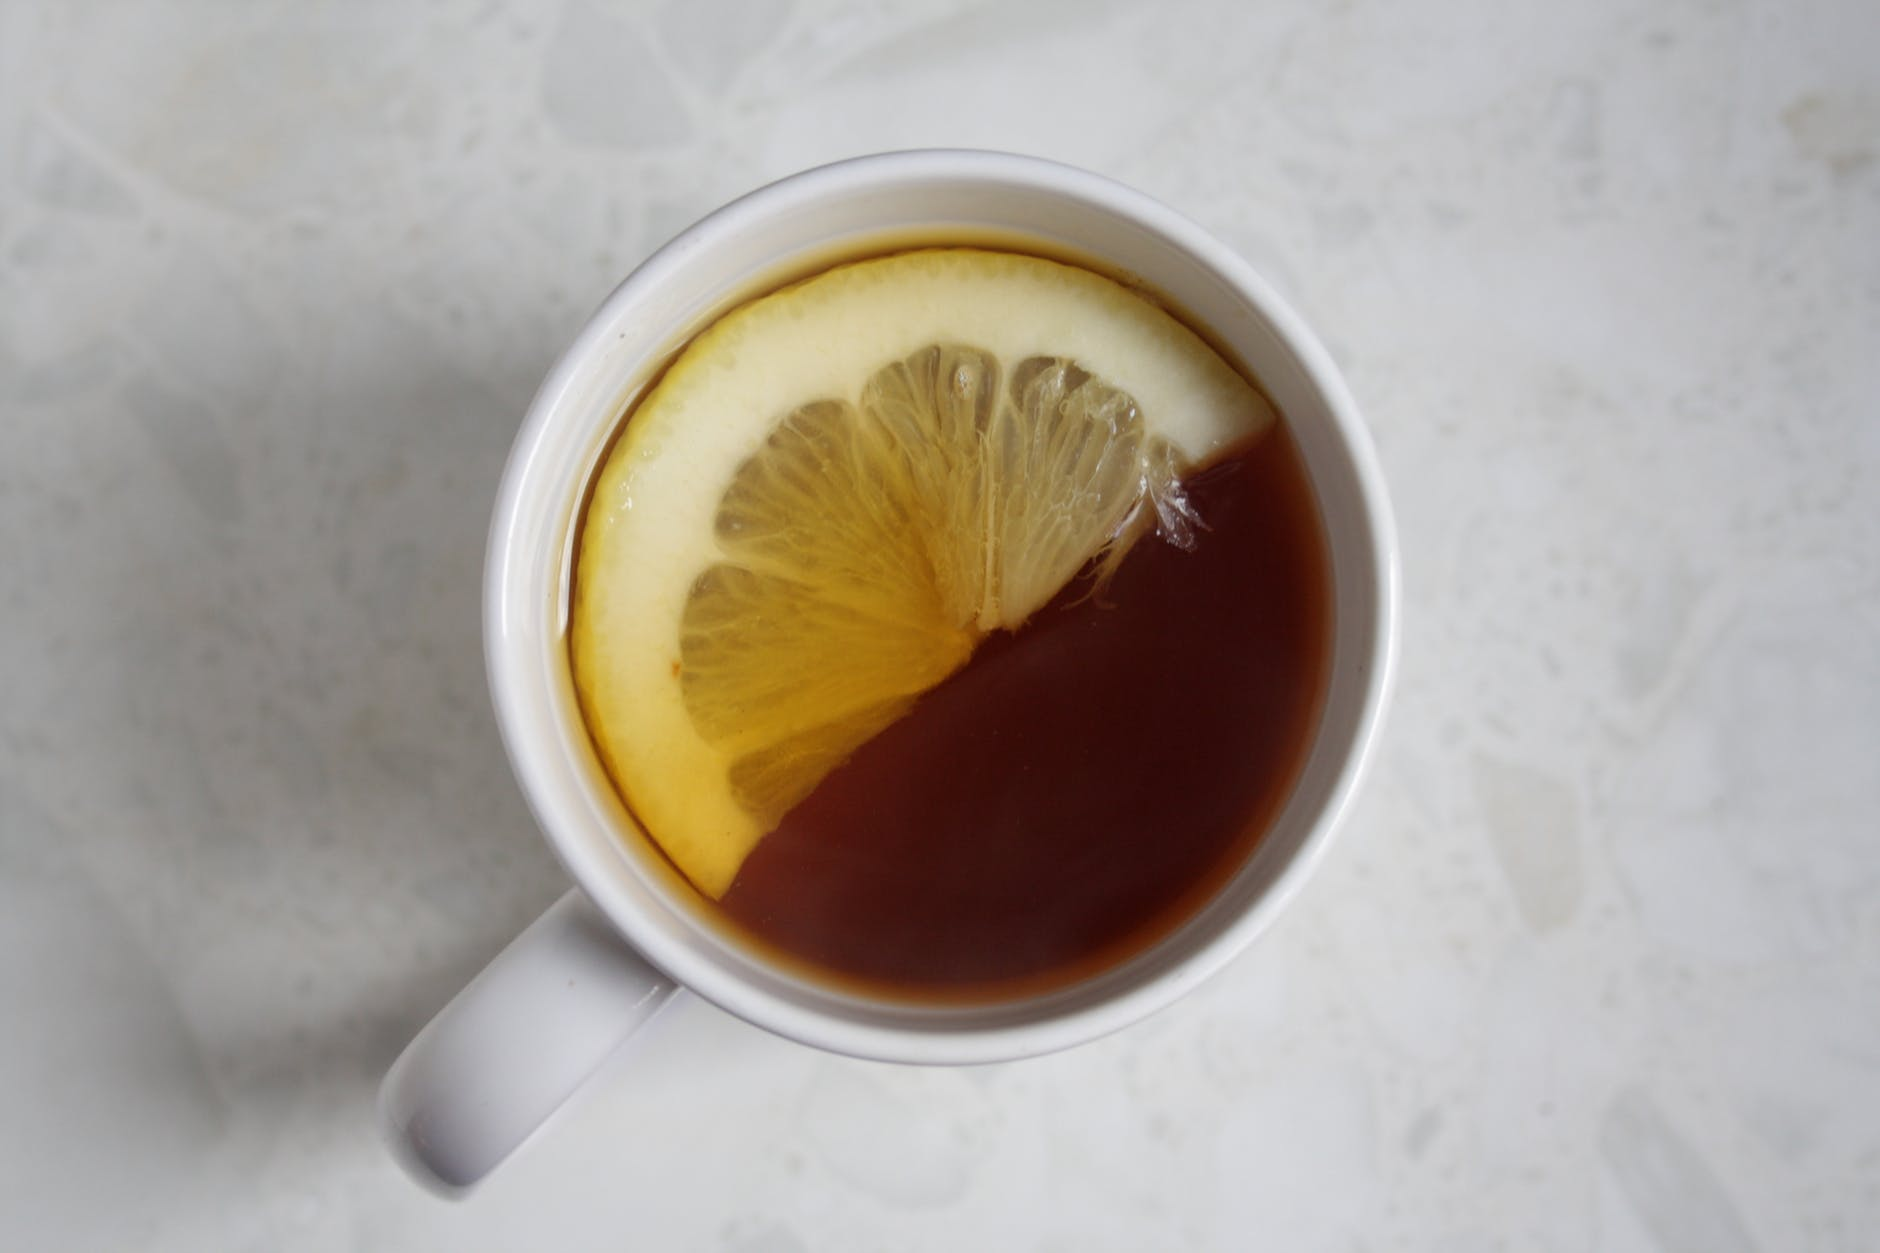 cup of tea with sliced lemon on white surface